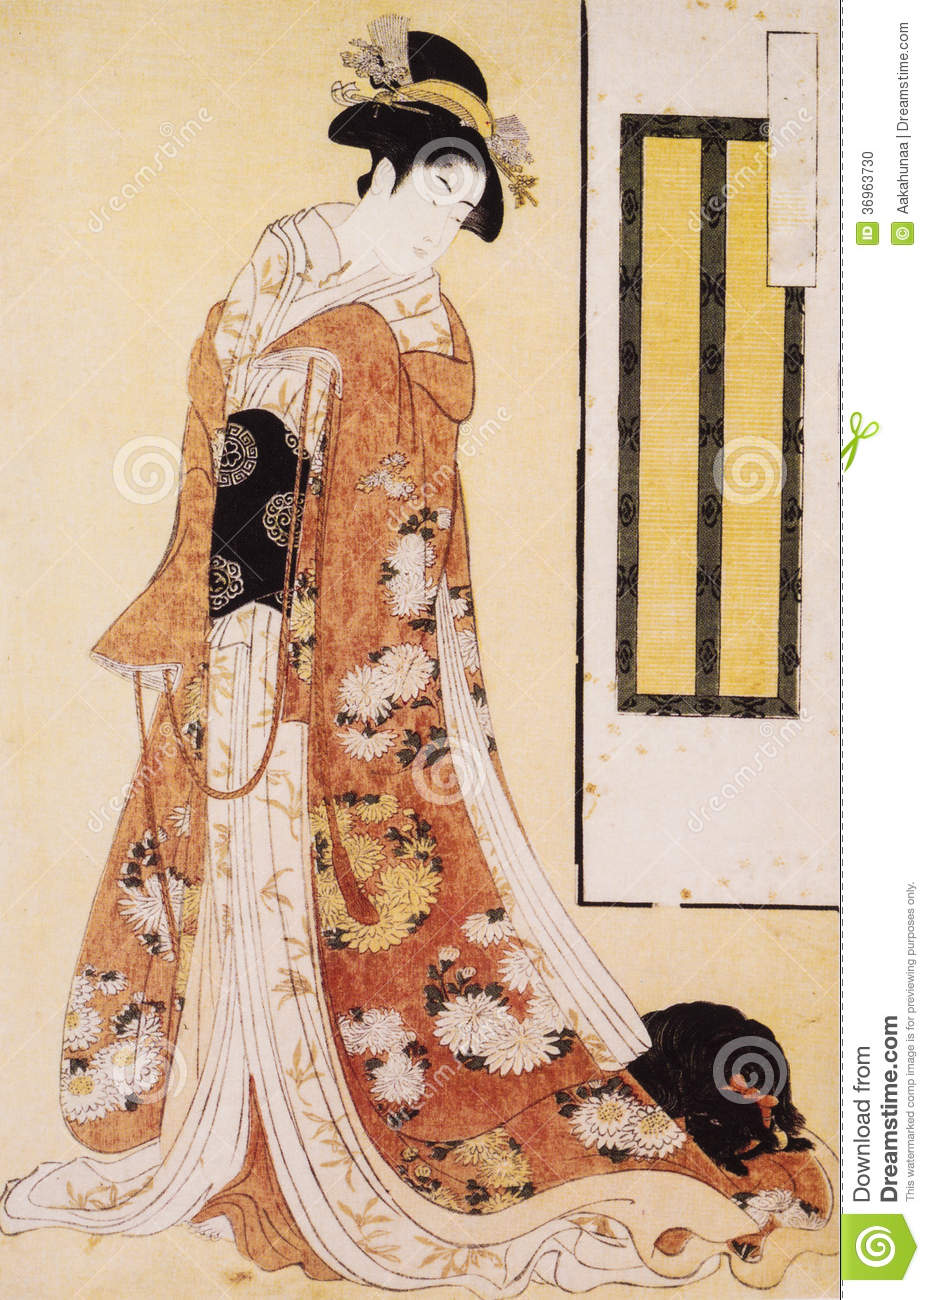 Japan S Traditional Costume Stock Photo - Image of